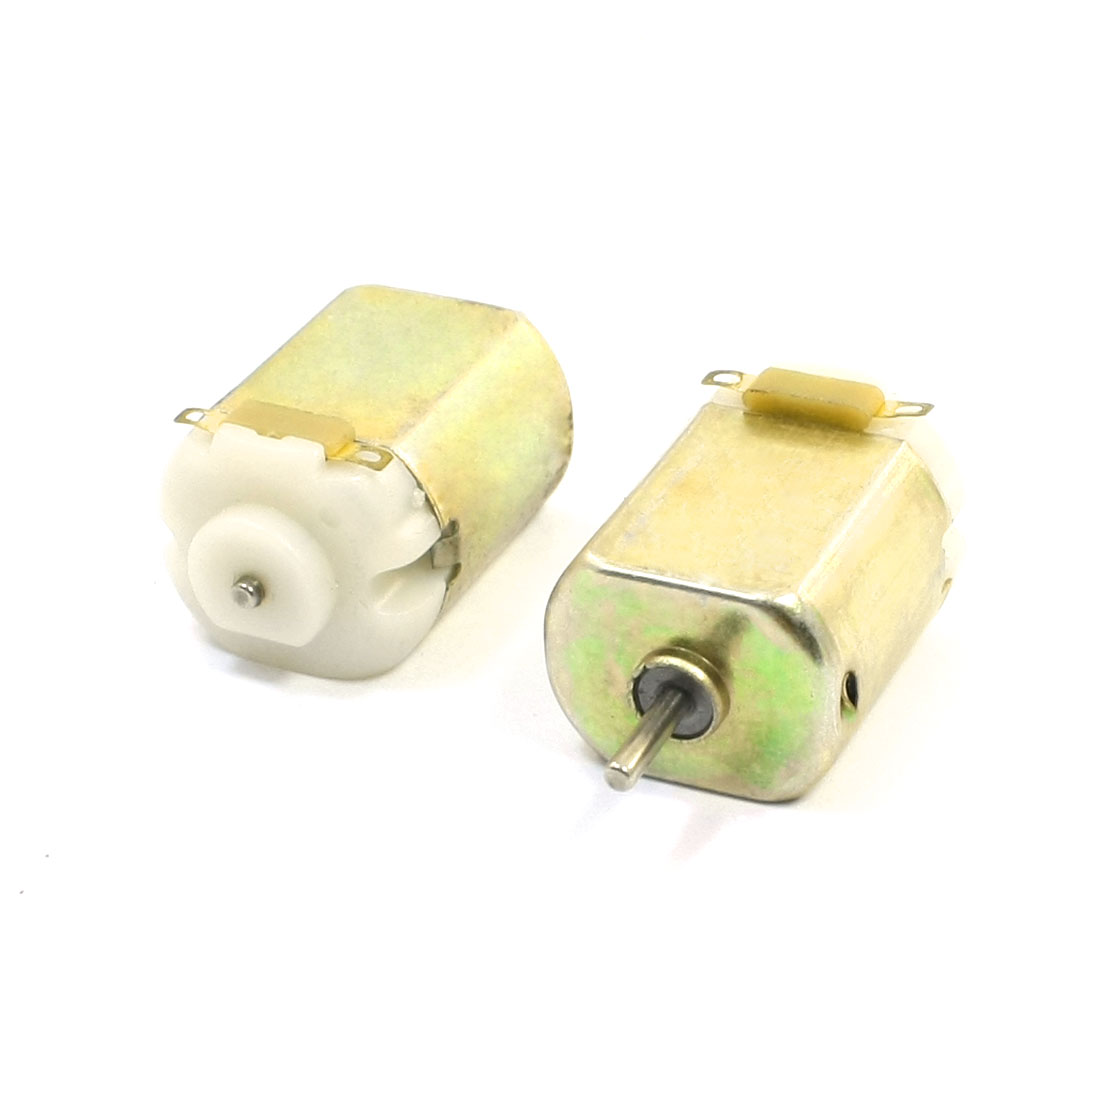 2pcs-40500RPM-Output-Speed-2-Pin-Terminal-Electric-Micro-Motor-DC-9V